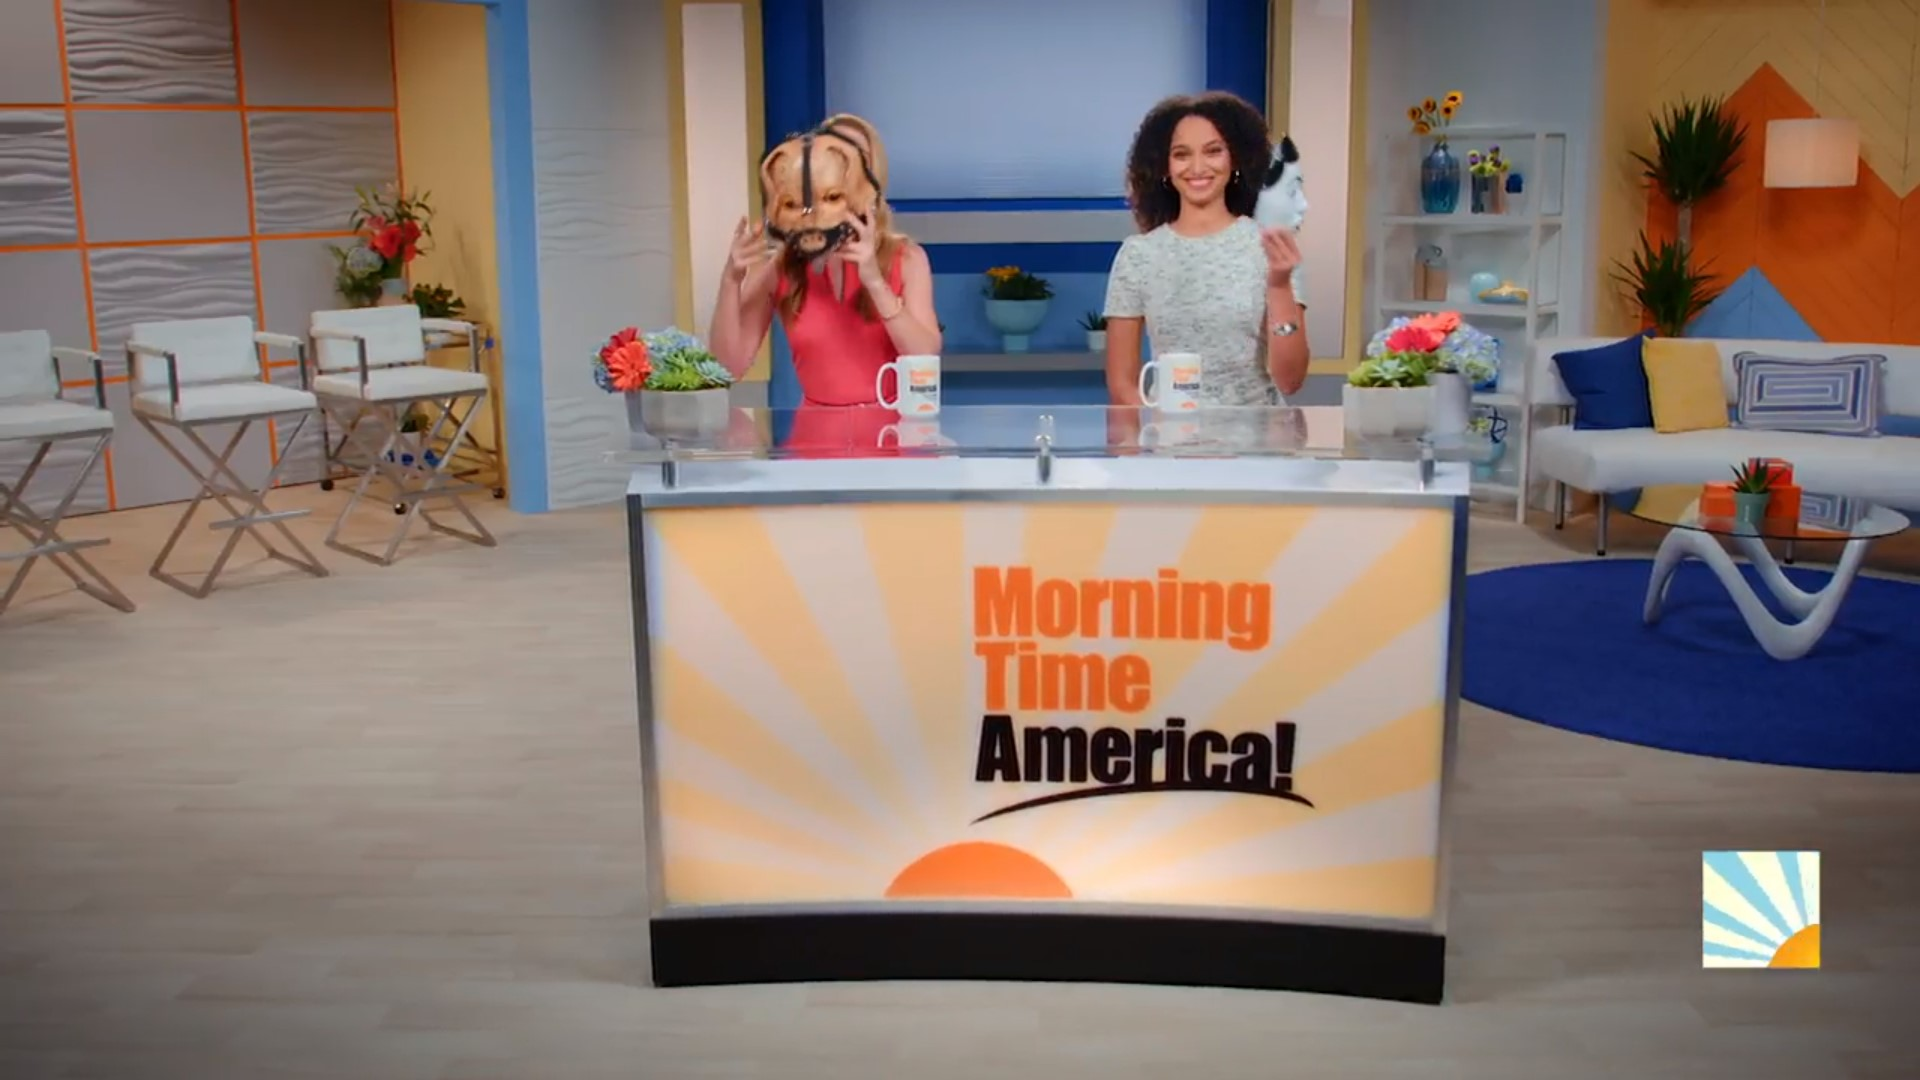 Morning Time America Banner - Get All Your Pre & Post-PURGE News at MORNING TIME AMERICA Online